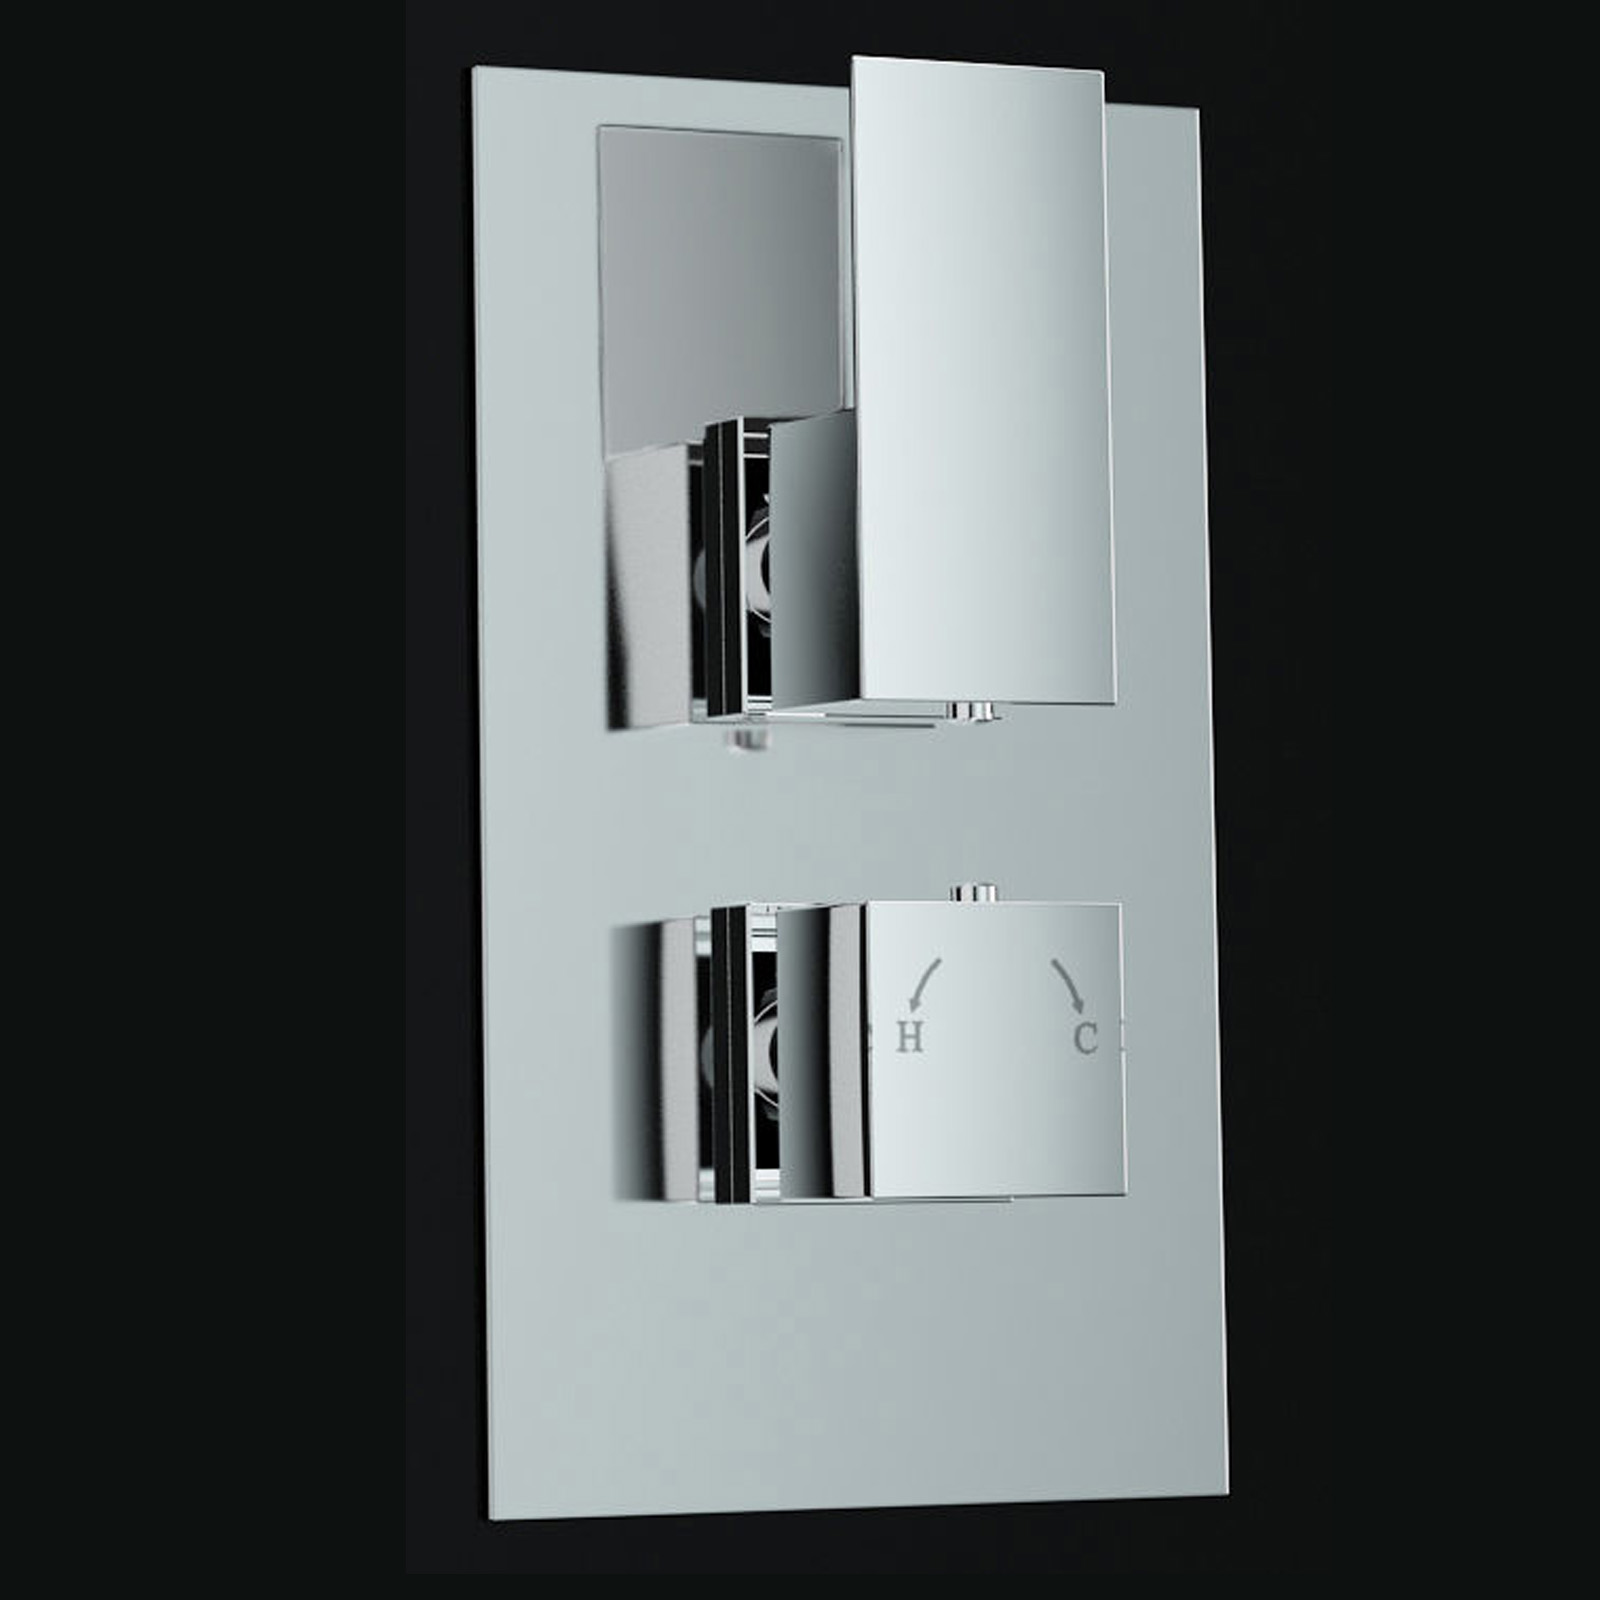 An image of 1 Way Concealed Thermostatic Mixer Shower Valve Lever Handle